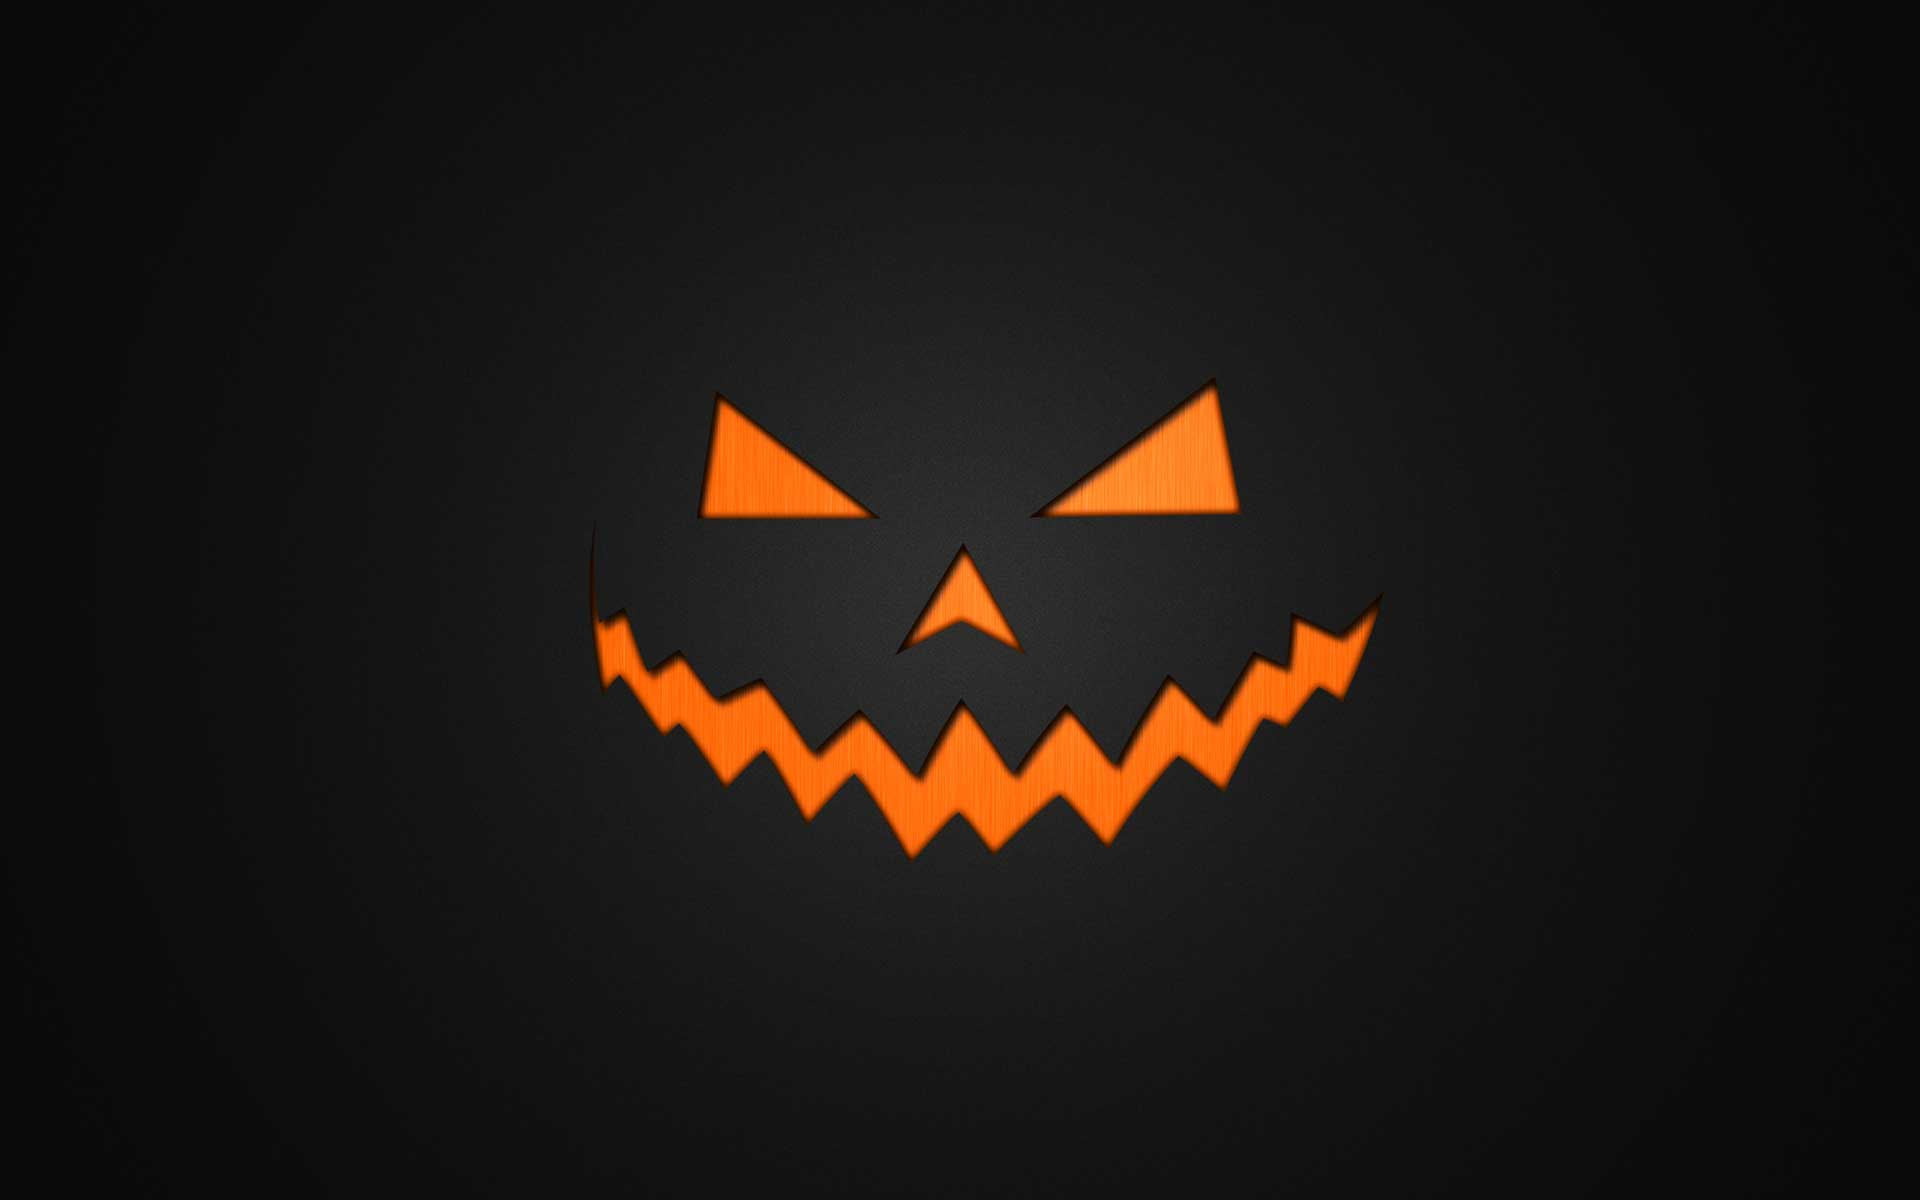 Best Happy Halloween Black Background Wallpaper Desktop Wallpaper with 1920x1200